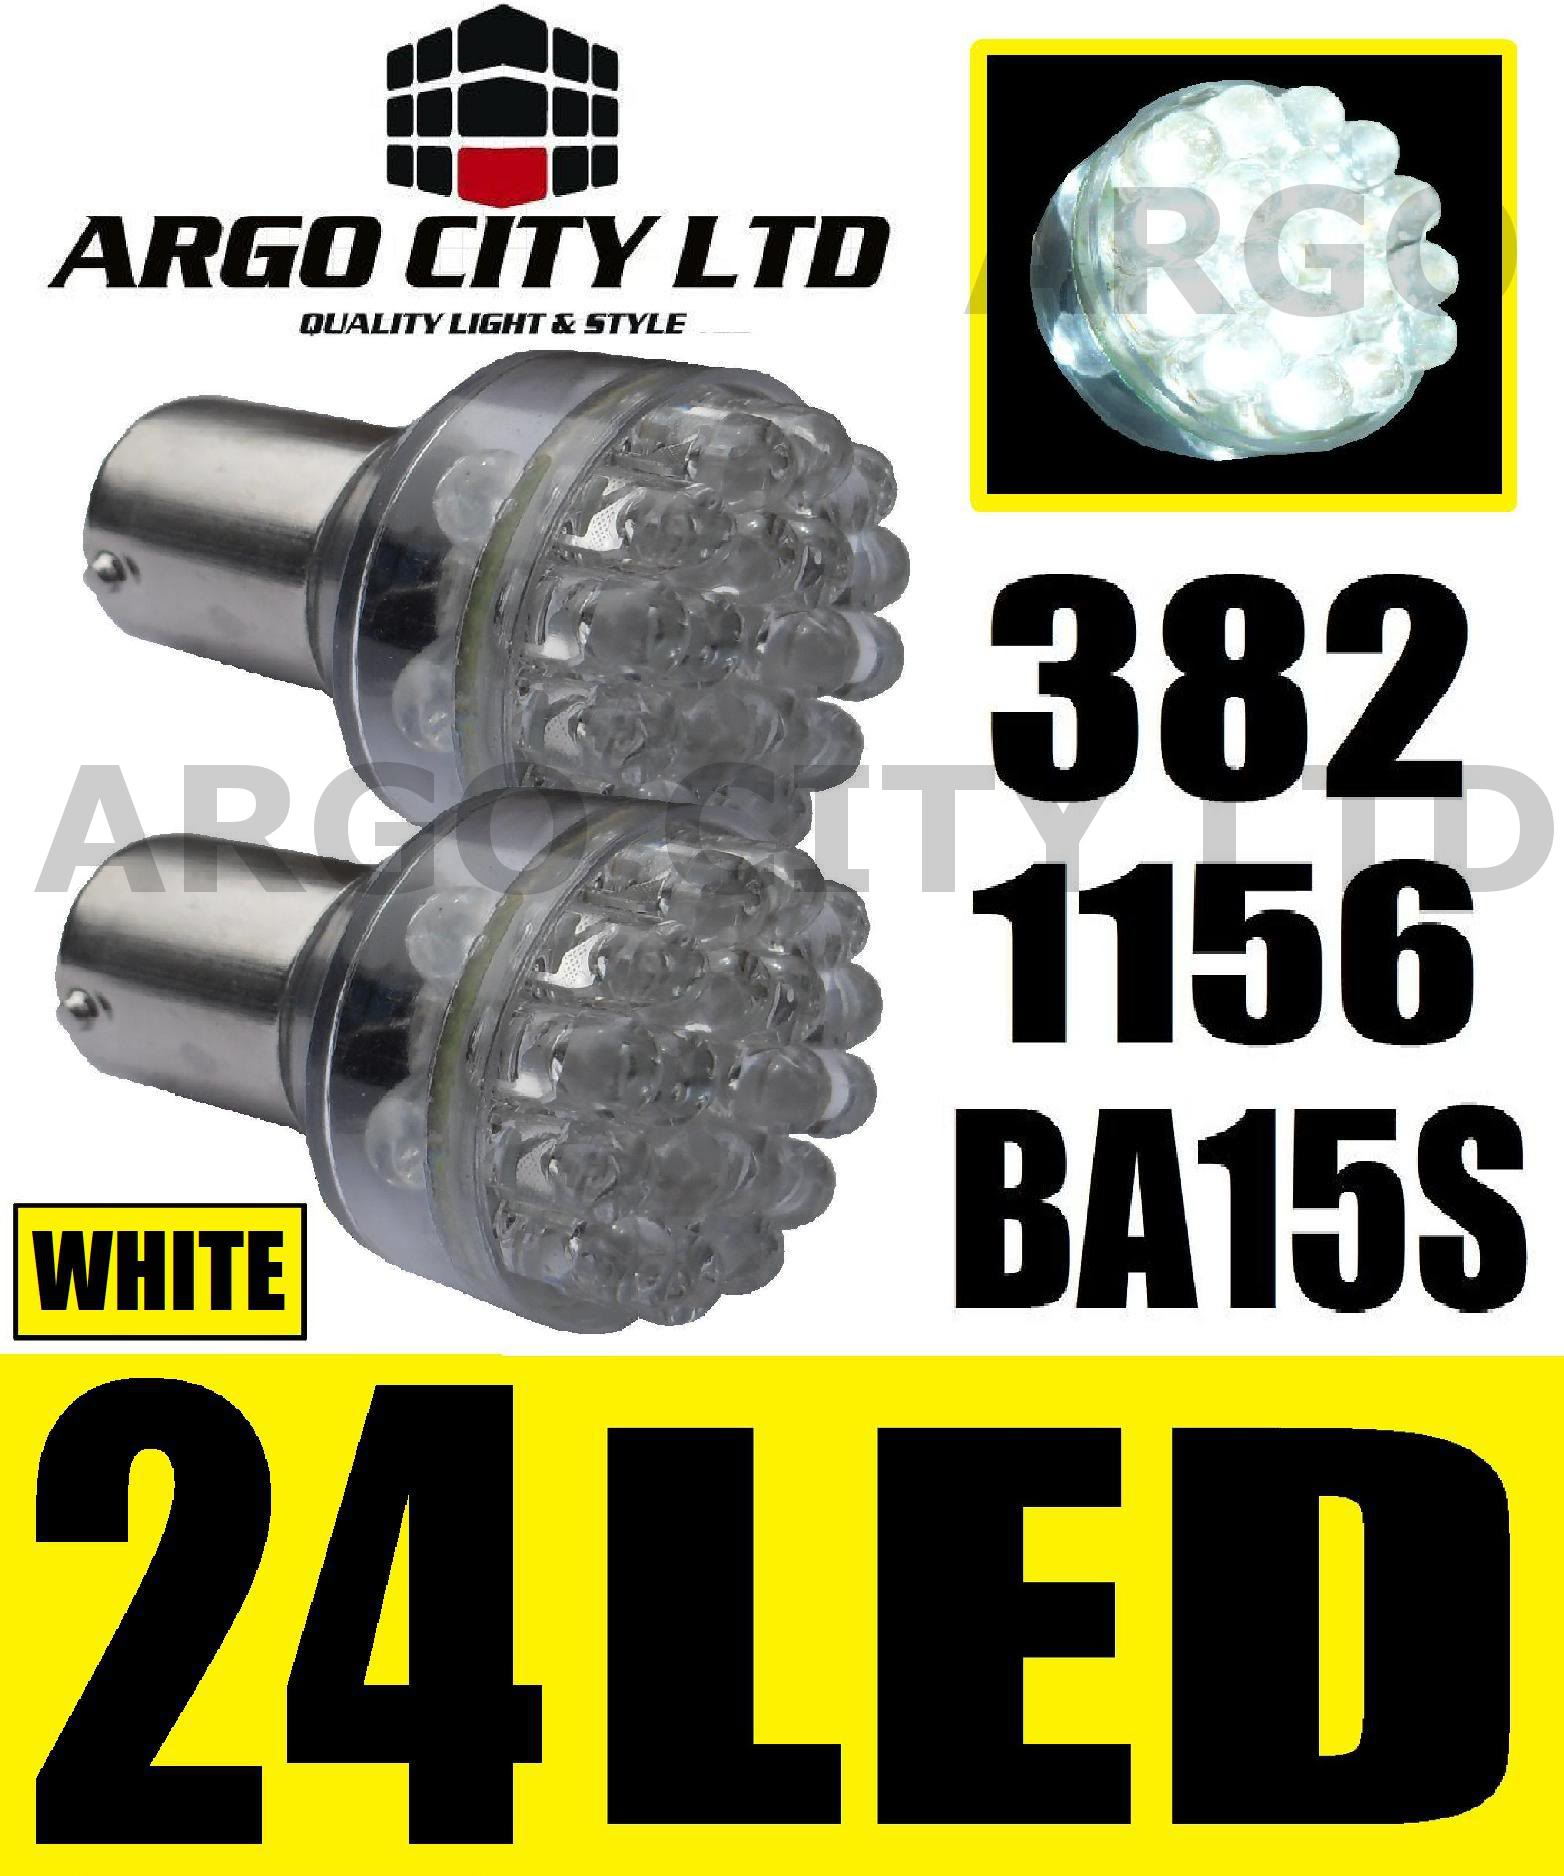 24 LED 382 1156 BA15S BULBS LOTUS ESPRIT